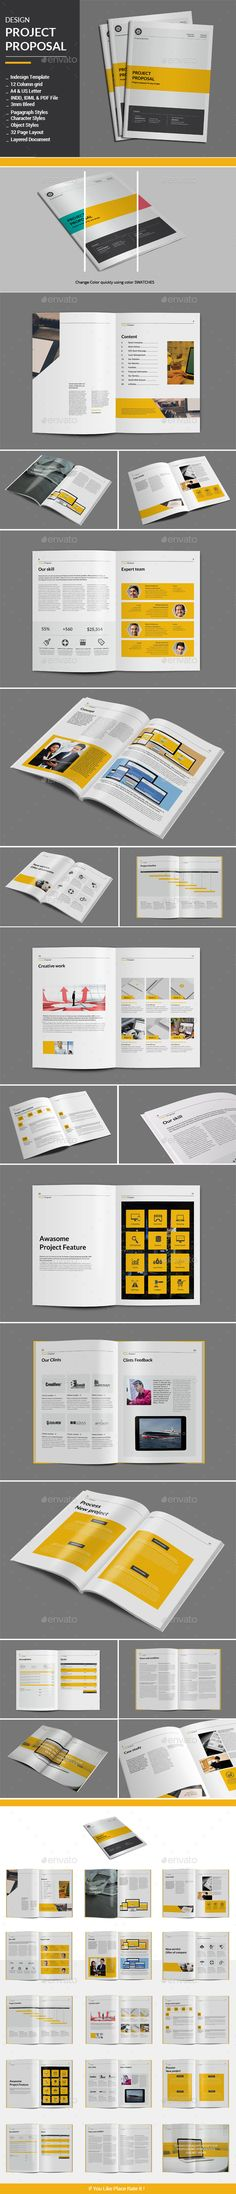 Design Project Proposal Template #design Download: http://graphicriver.net/item/design-project-proposal-template/13093160?ref=ksioks